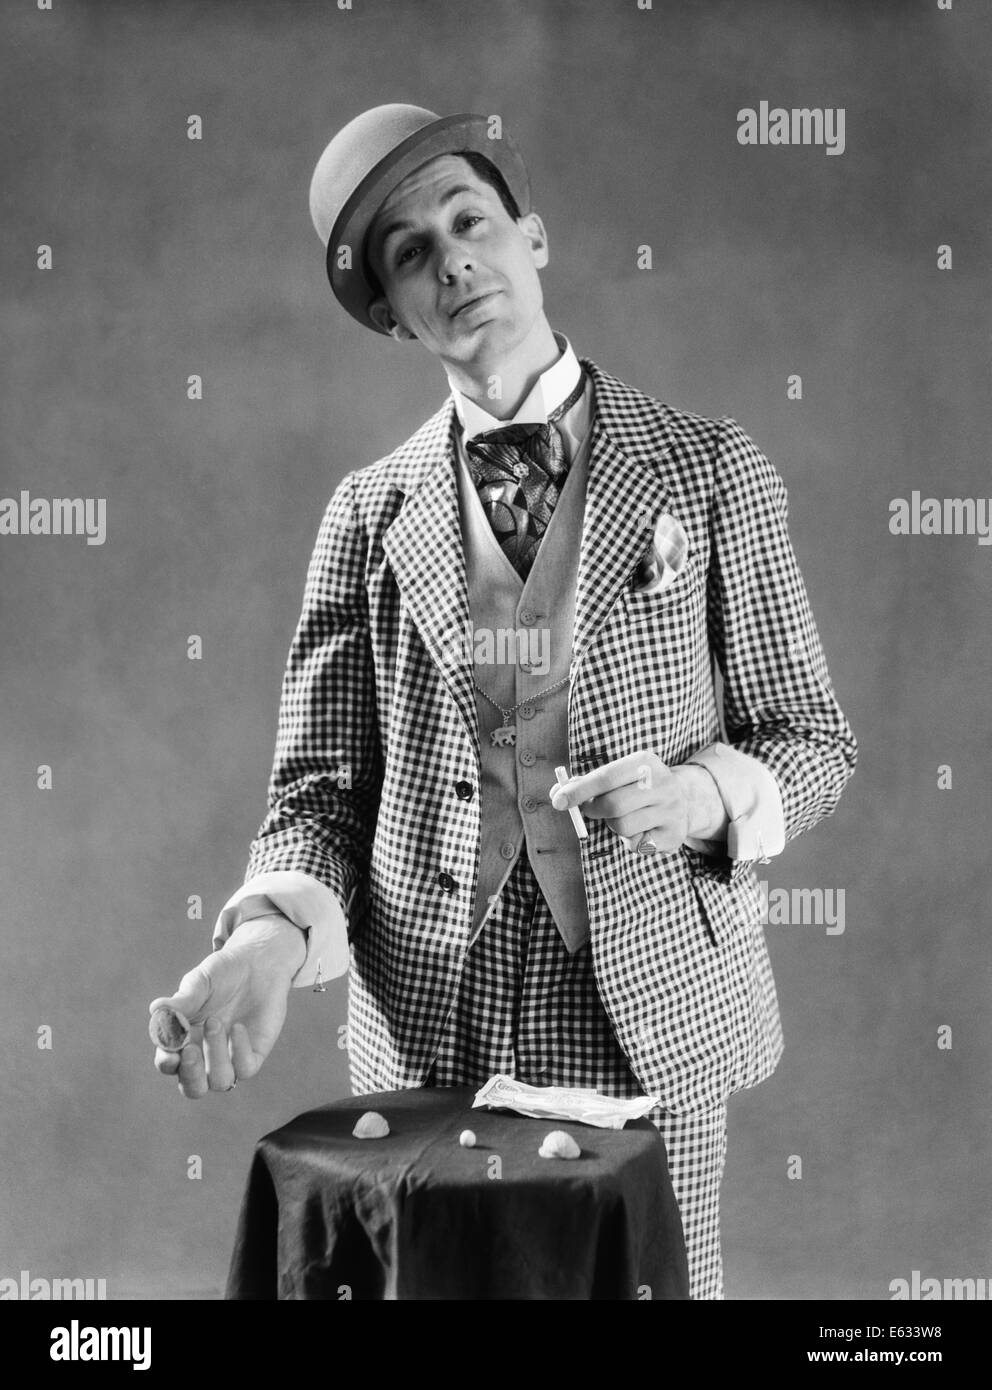 a0efee2a50e 1910s 1920s CHARACTER CON MAN BARKER BOWLER HAT CHECKED THREE PIECE SUITE  DEMONSTRATING SHELL GAME